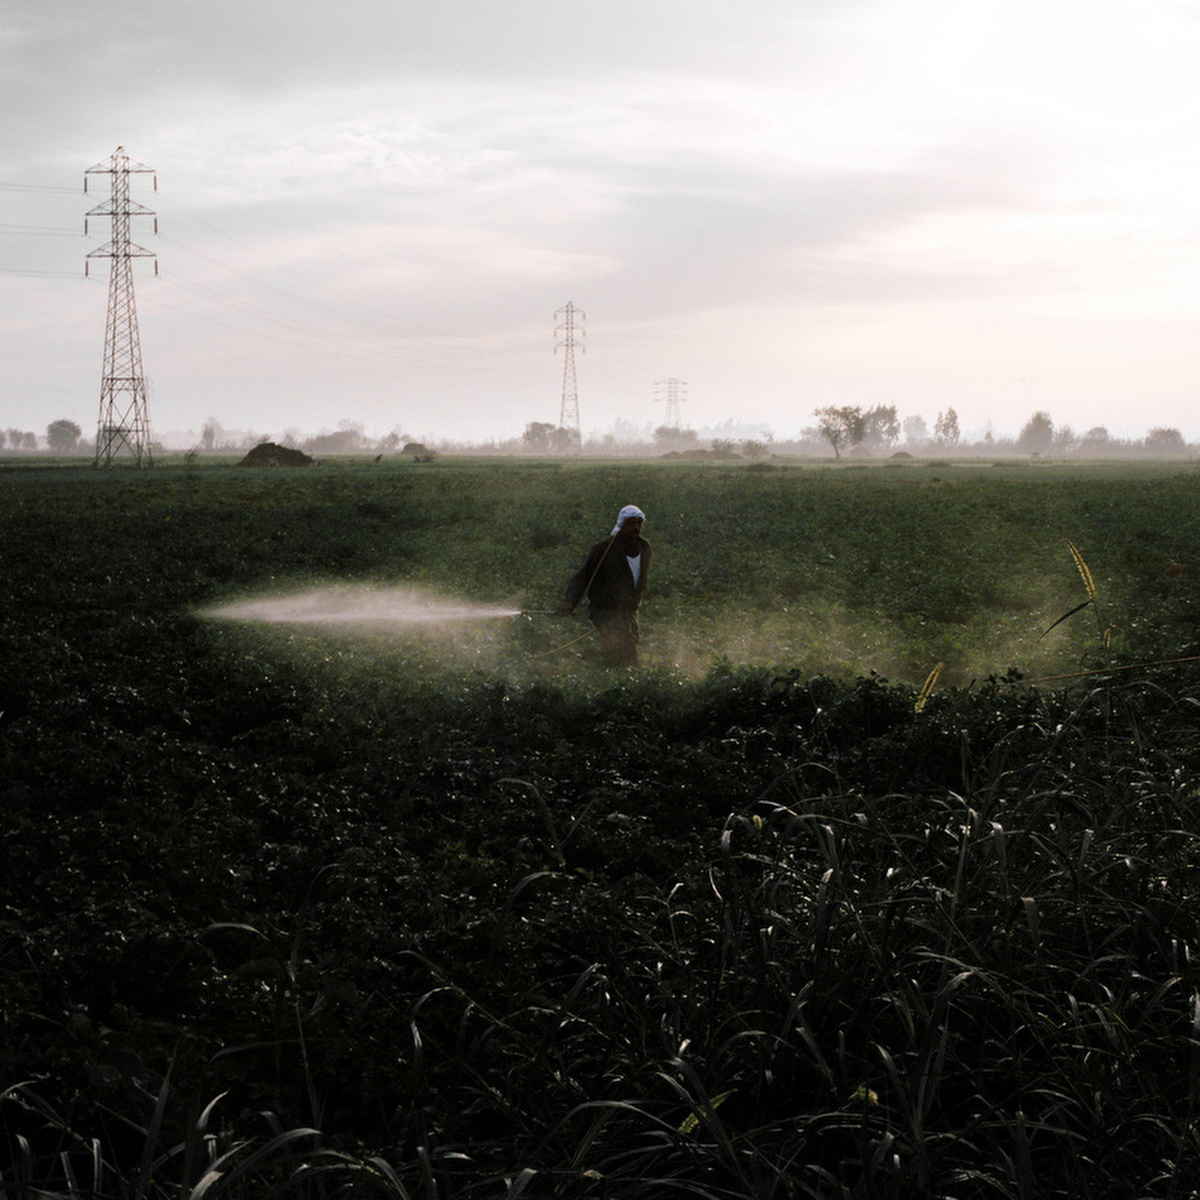 A farmer sprays water on a field at sunrise.